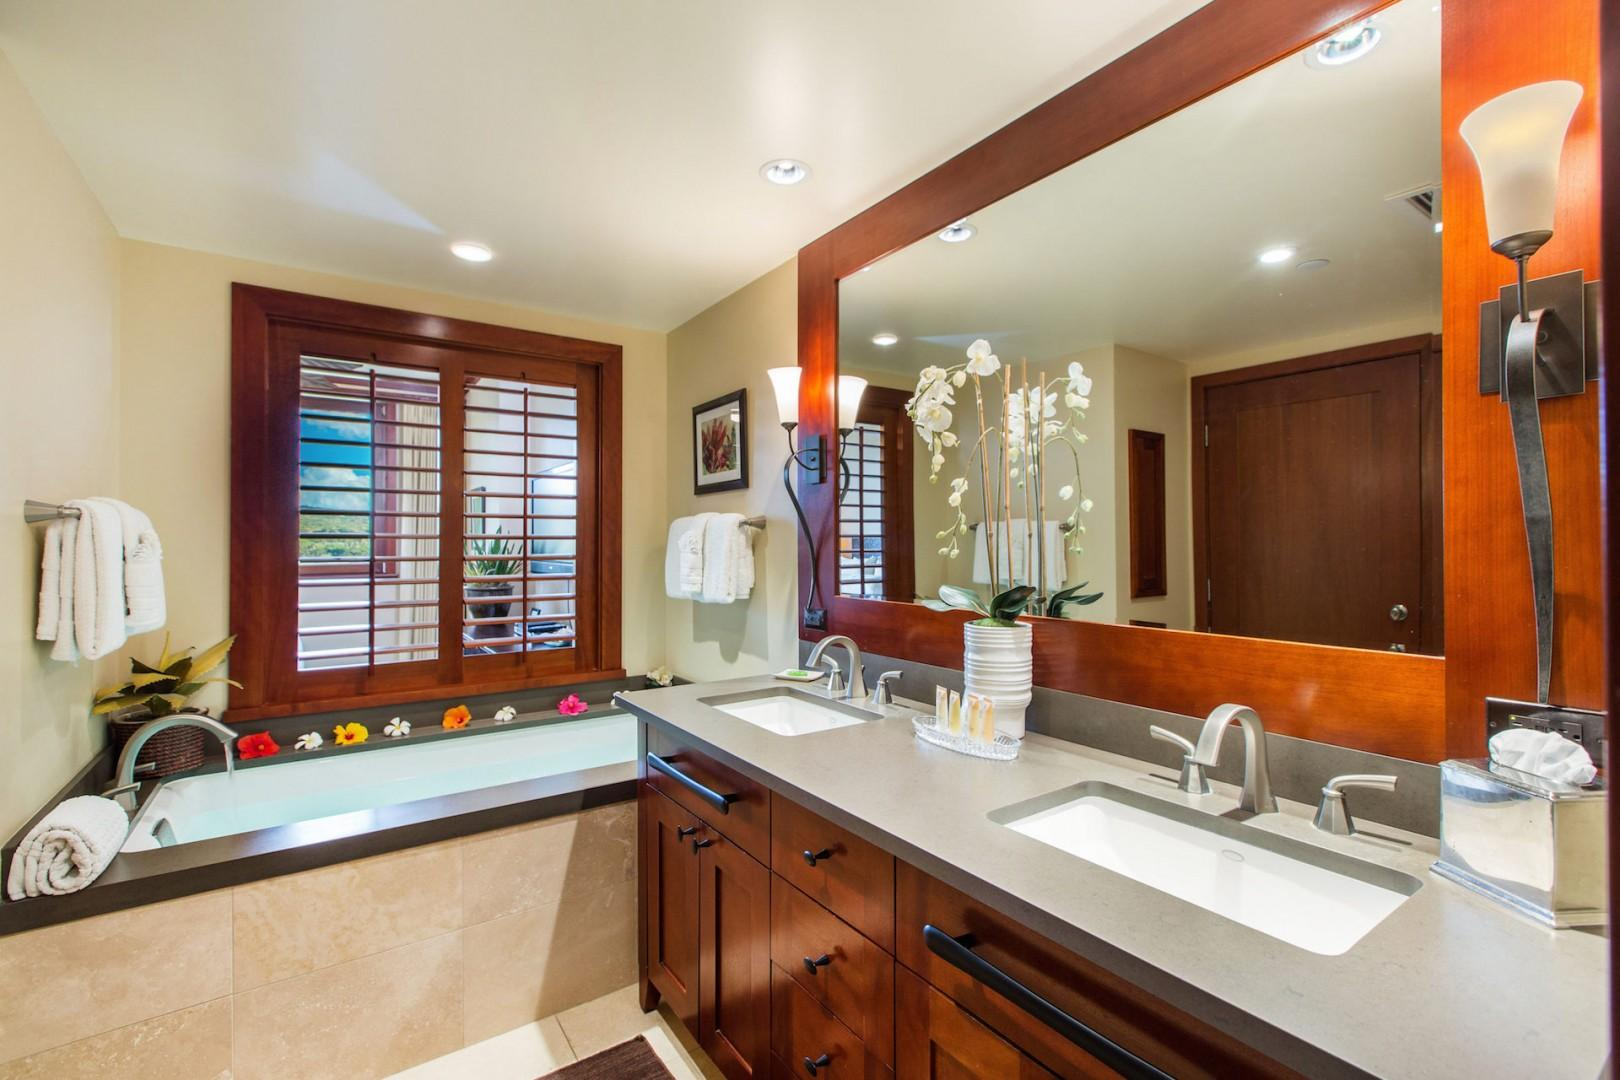 Master bathroom with dual sinks, deep soaking tub, separate shower